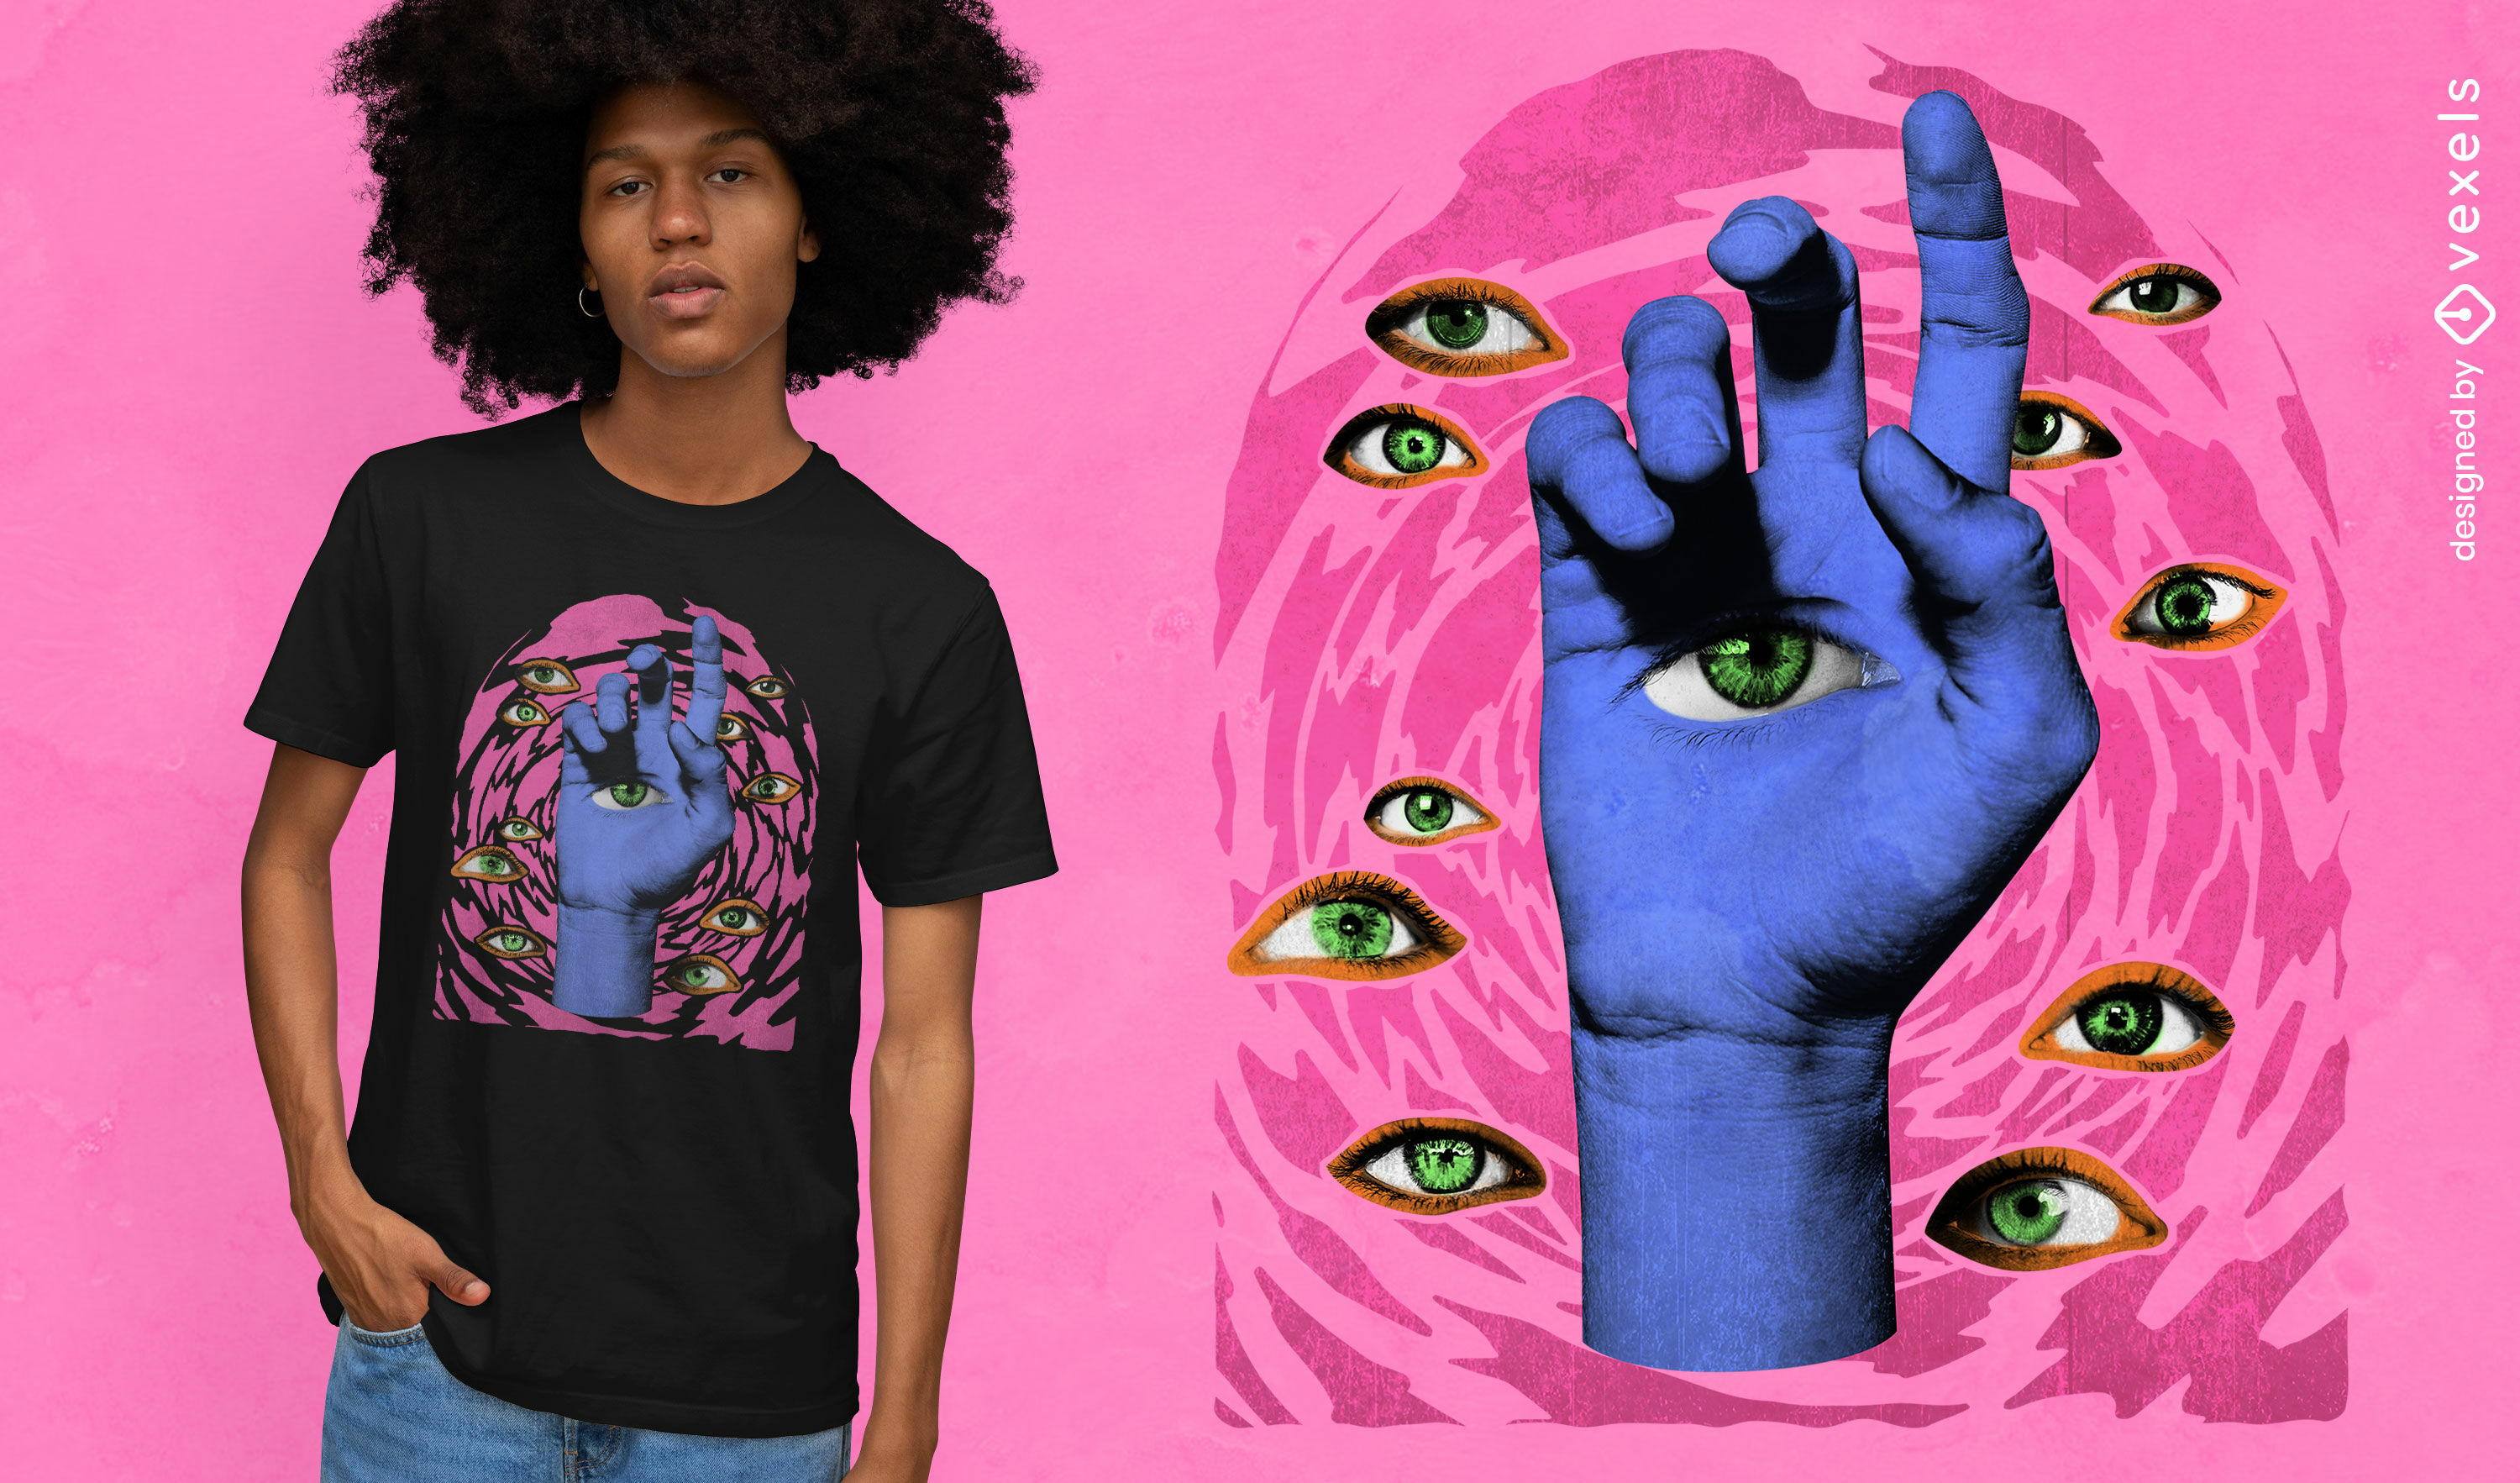 Hands and eyes psychedelic psd t-shirt design